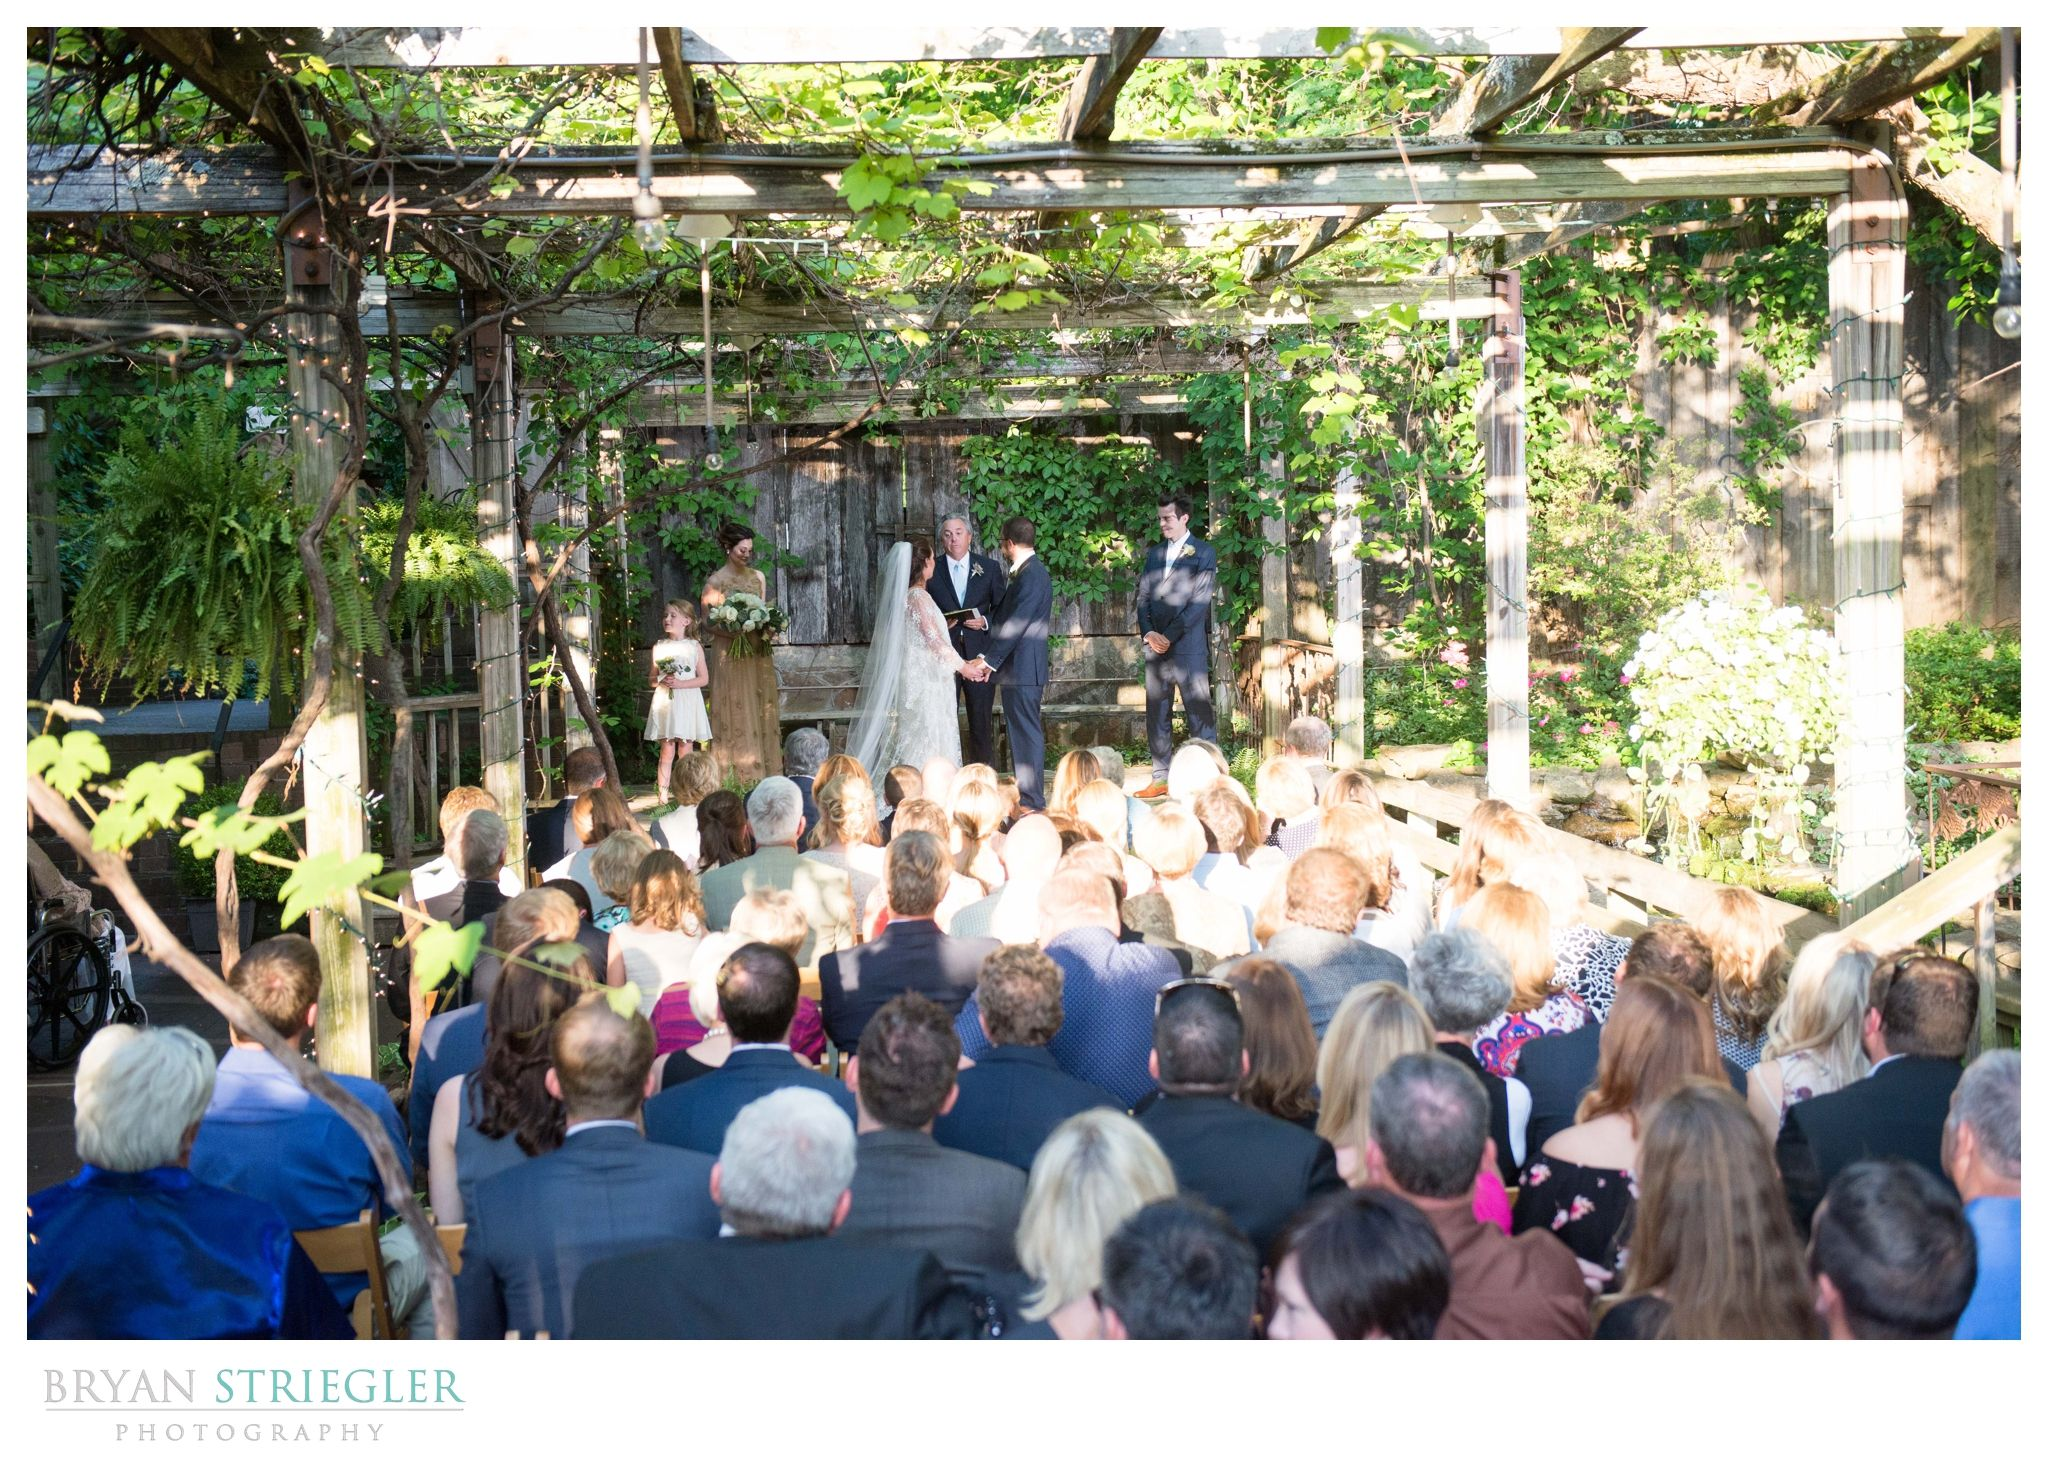 Wide view of the outdoor wedding ceremony at The Garden Room